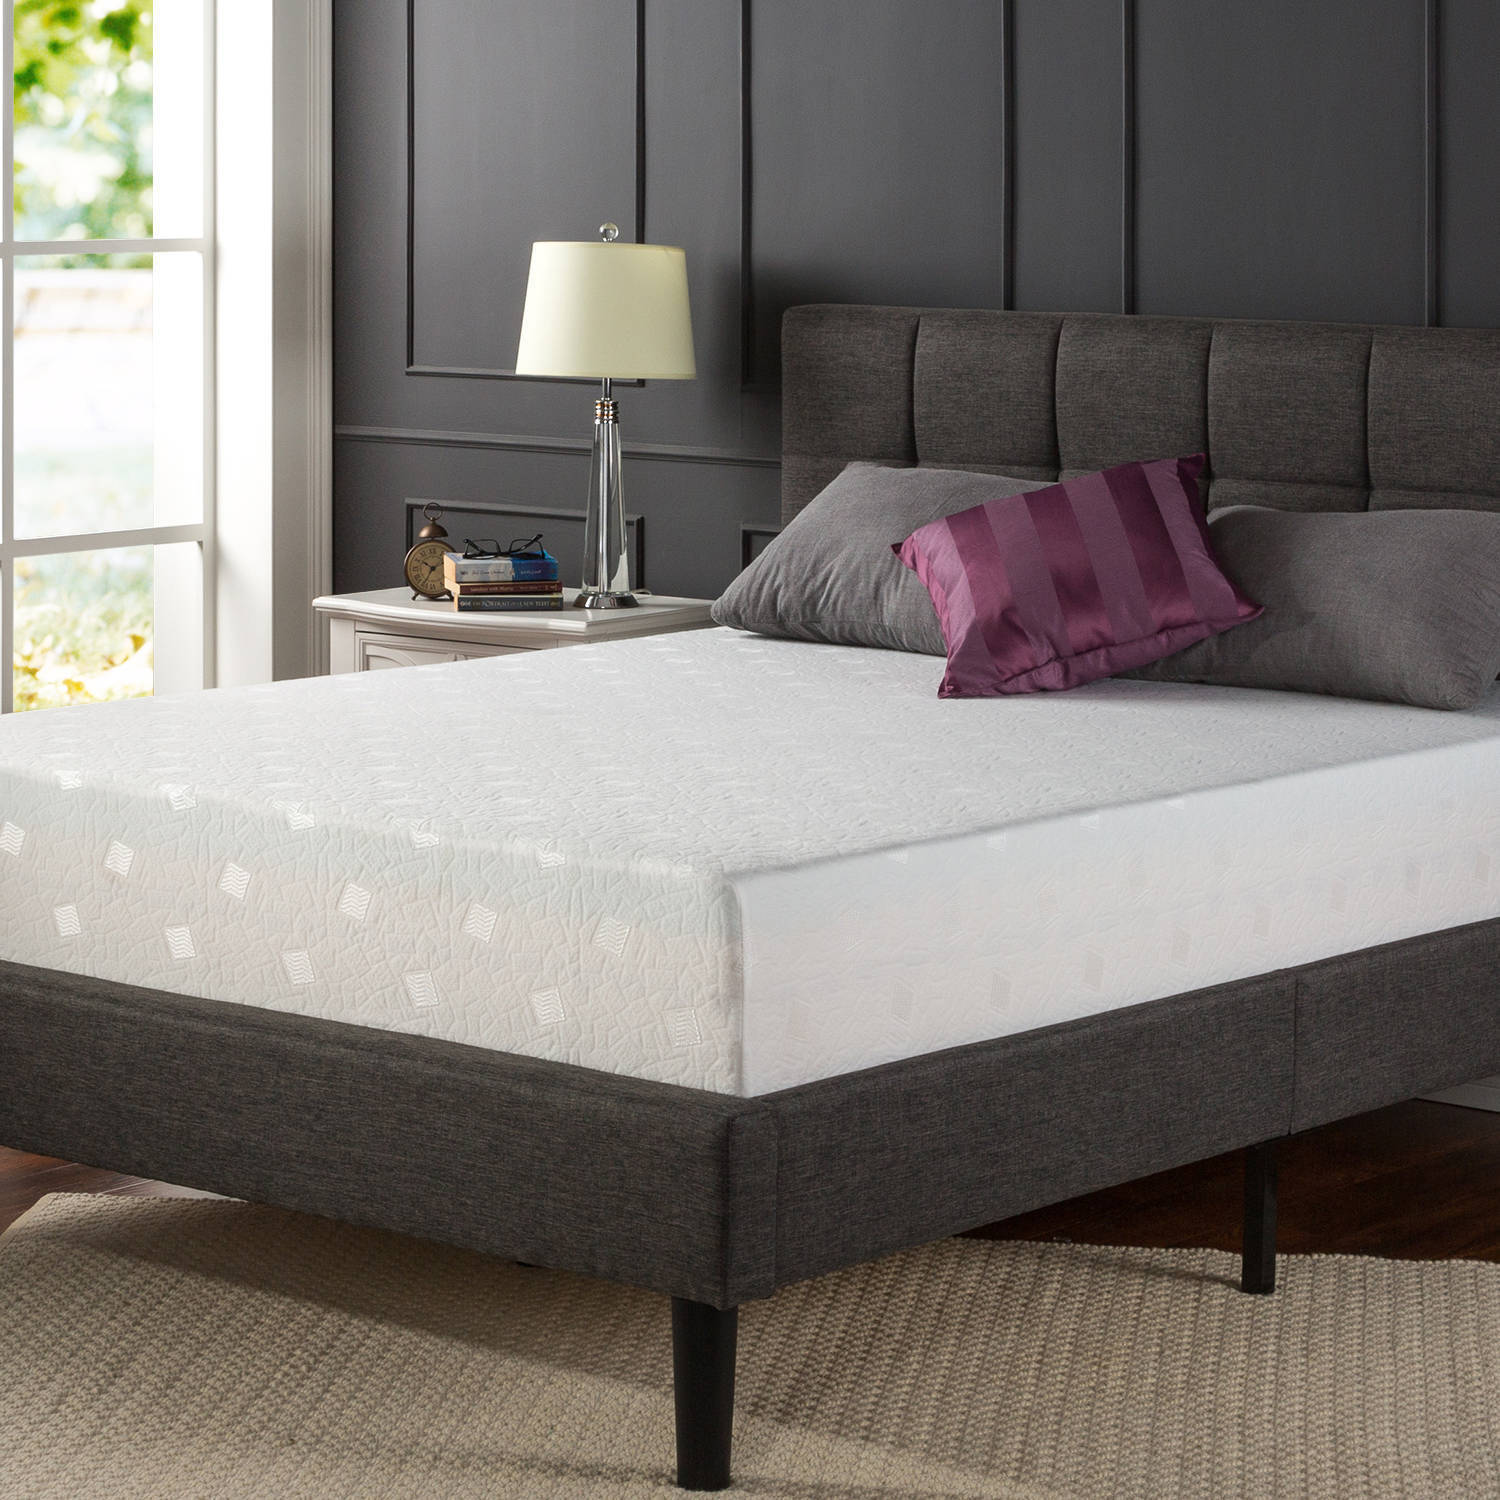 Spa Sensations 12 Memory Foam Comfort Mattress Twin Full